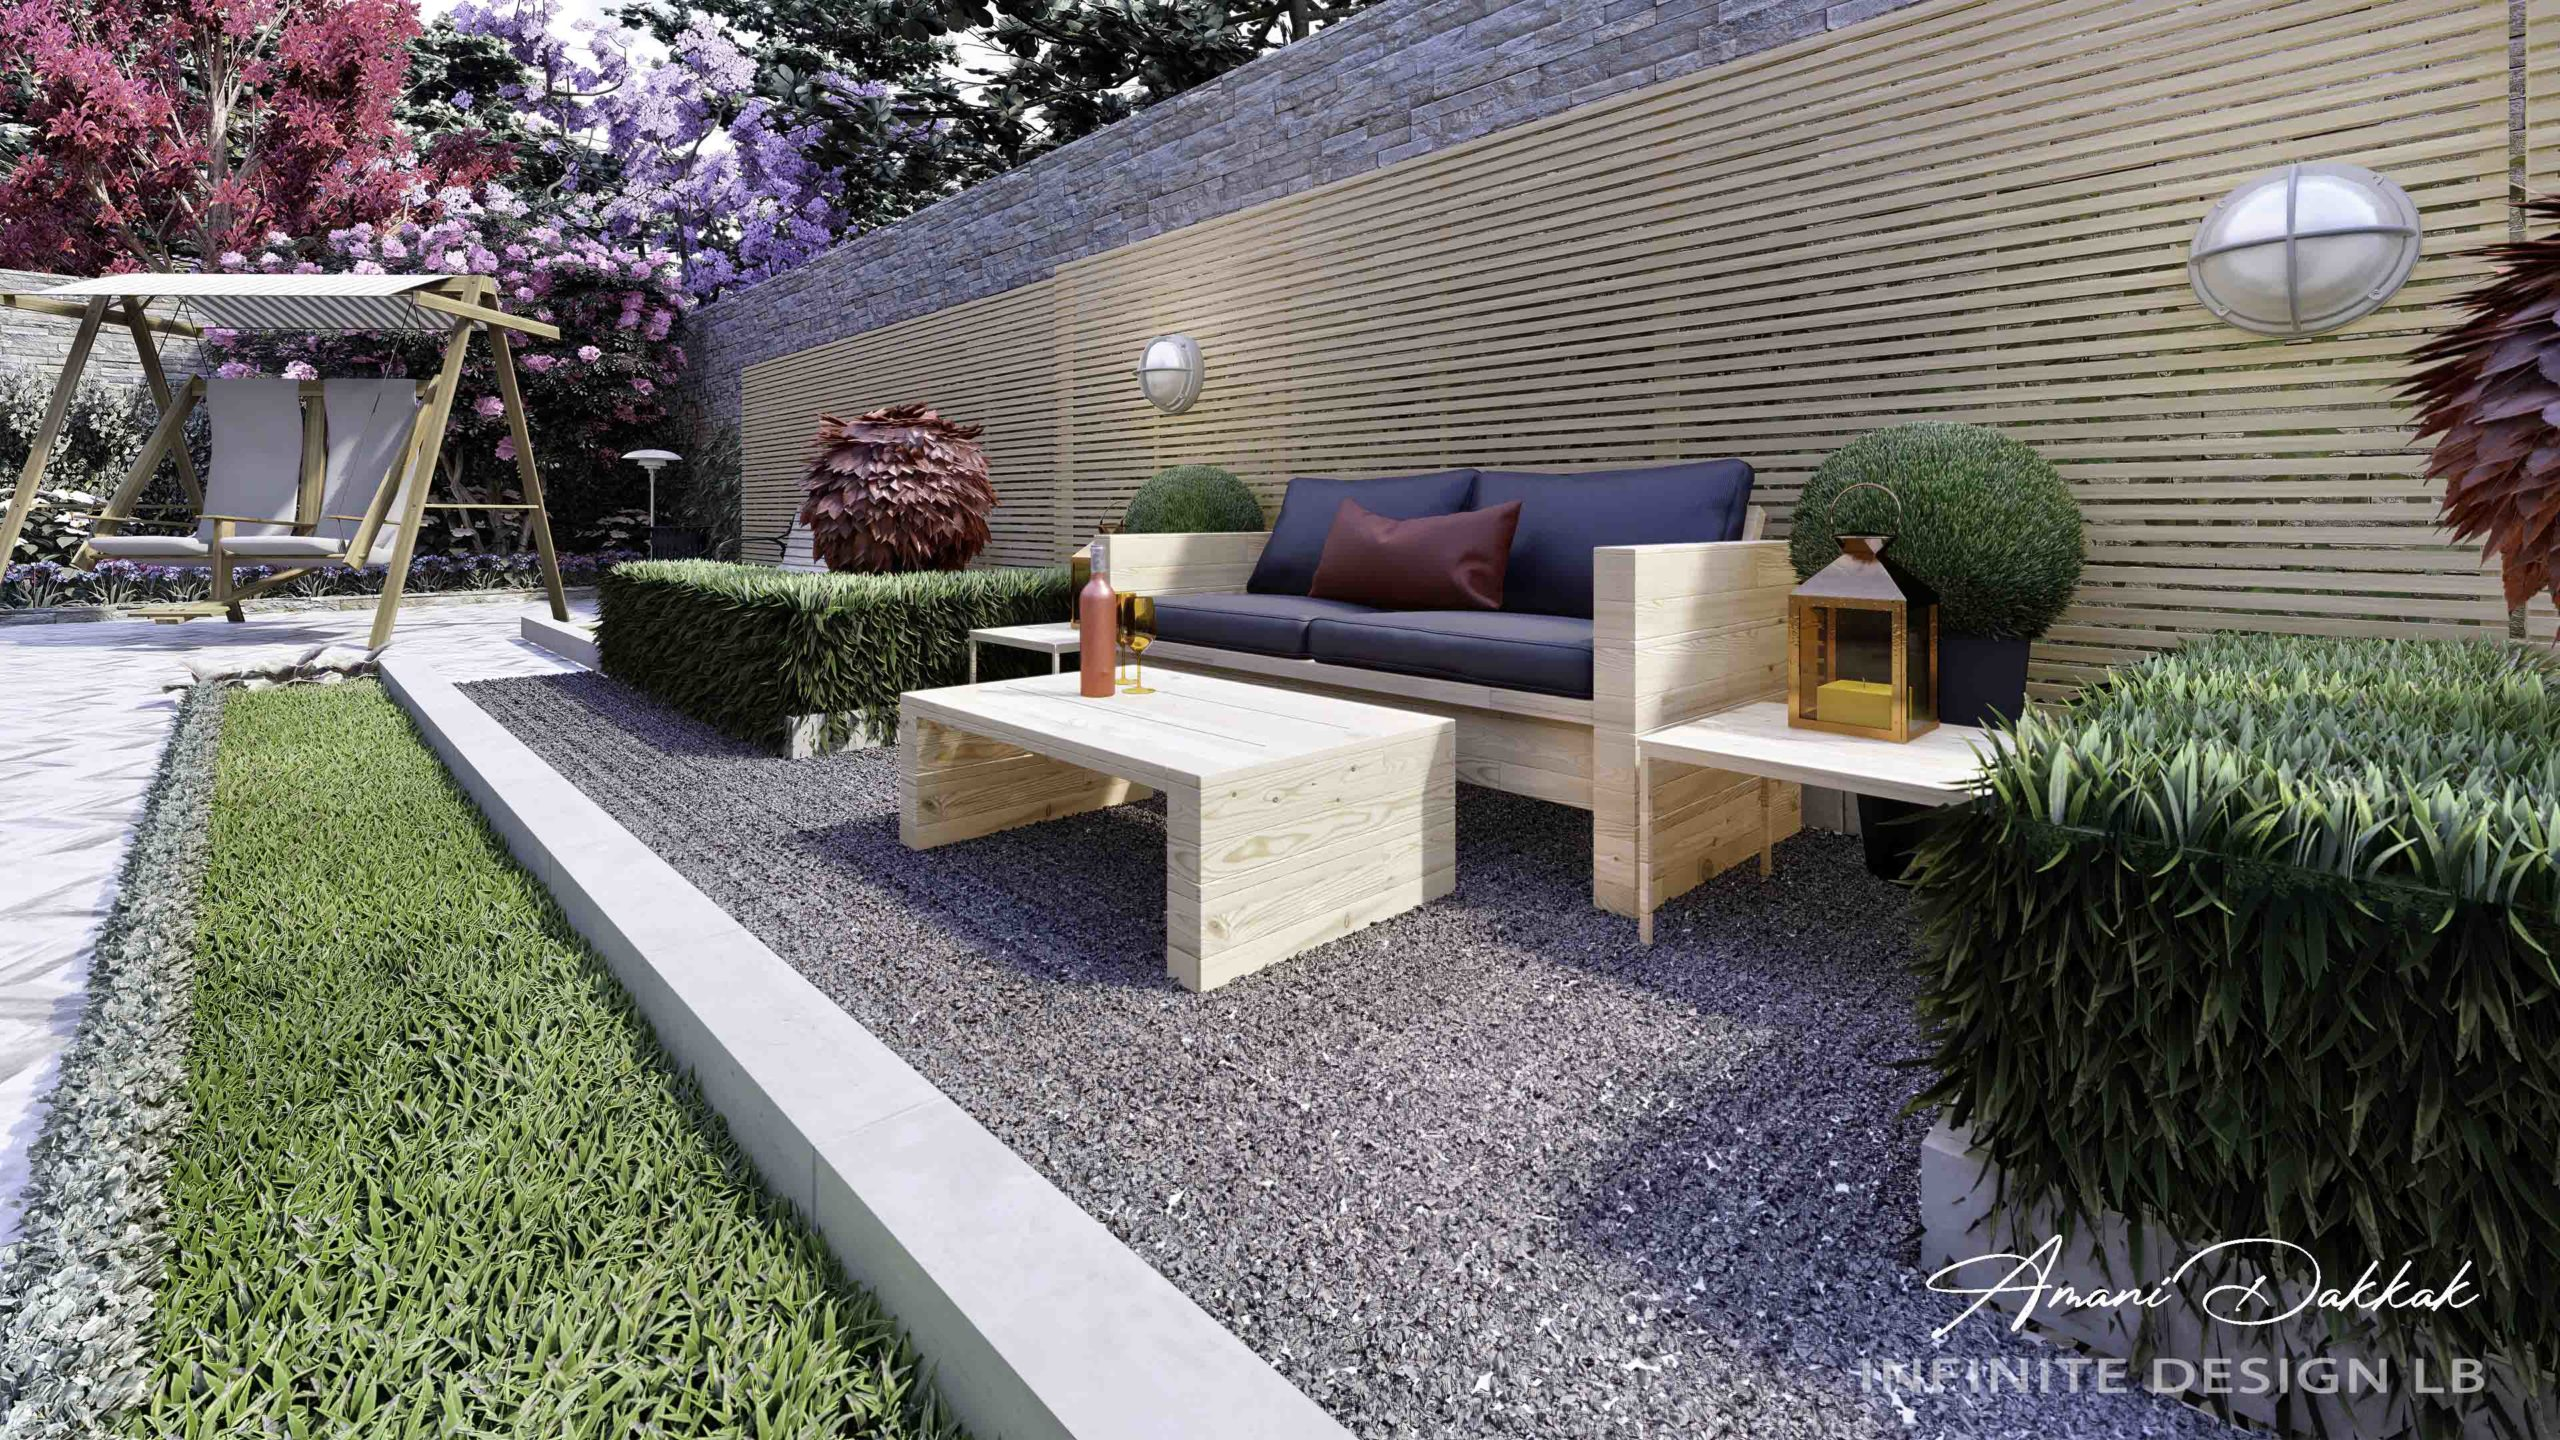 Mountain Villa Back Garden Exterior Design | By Amani Dakkak